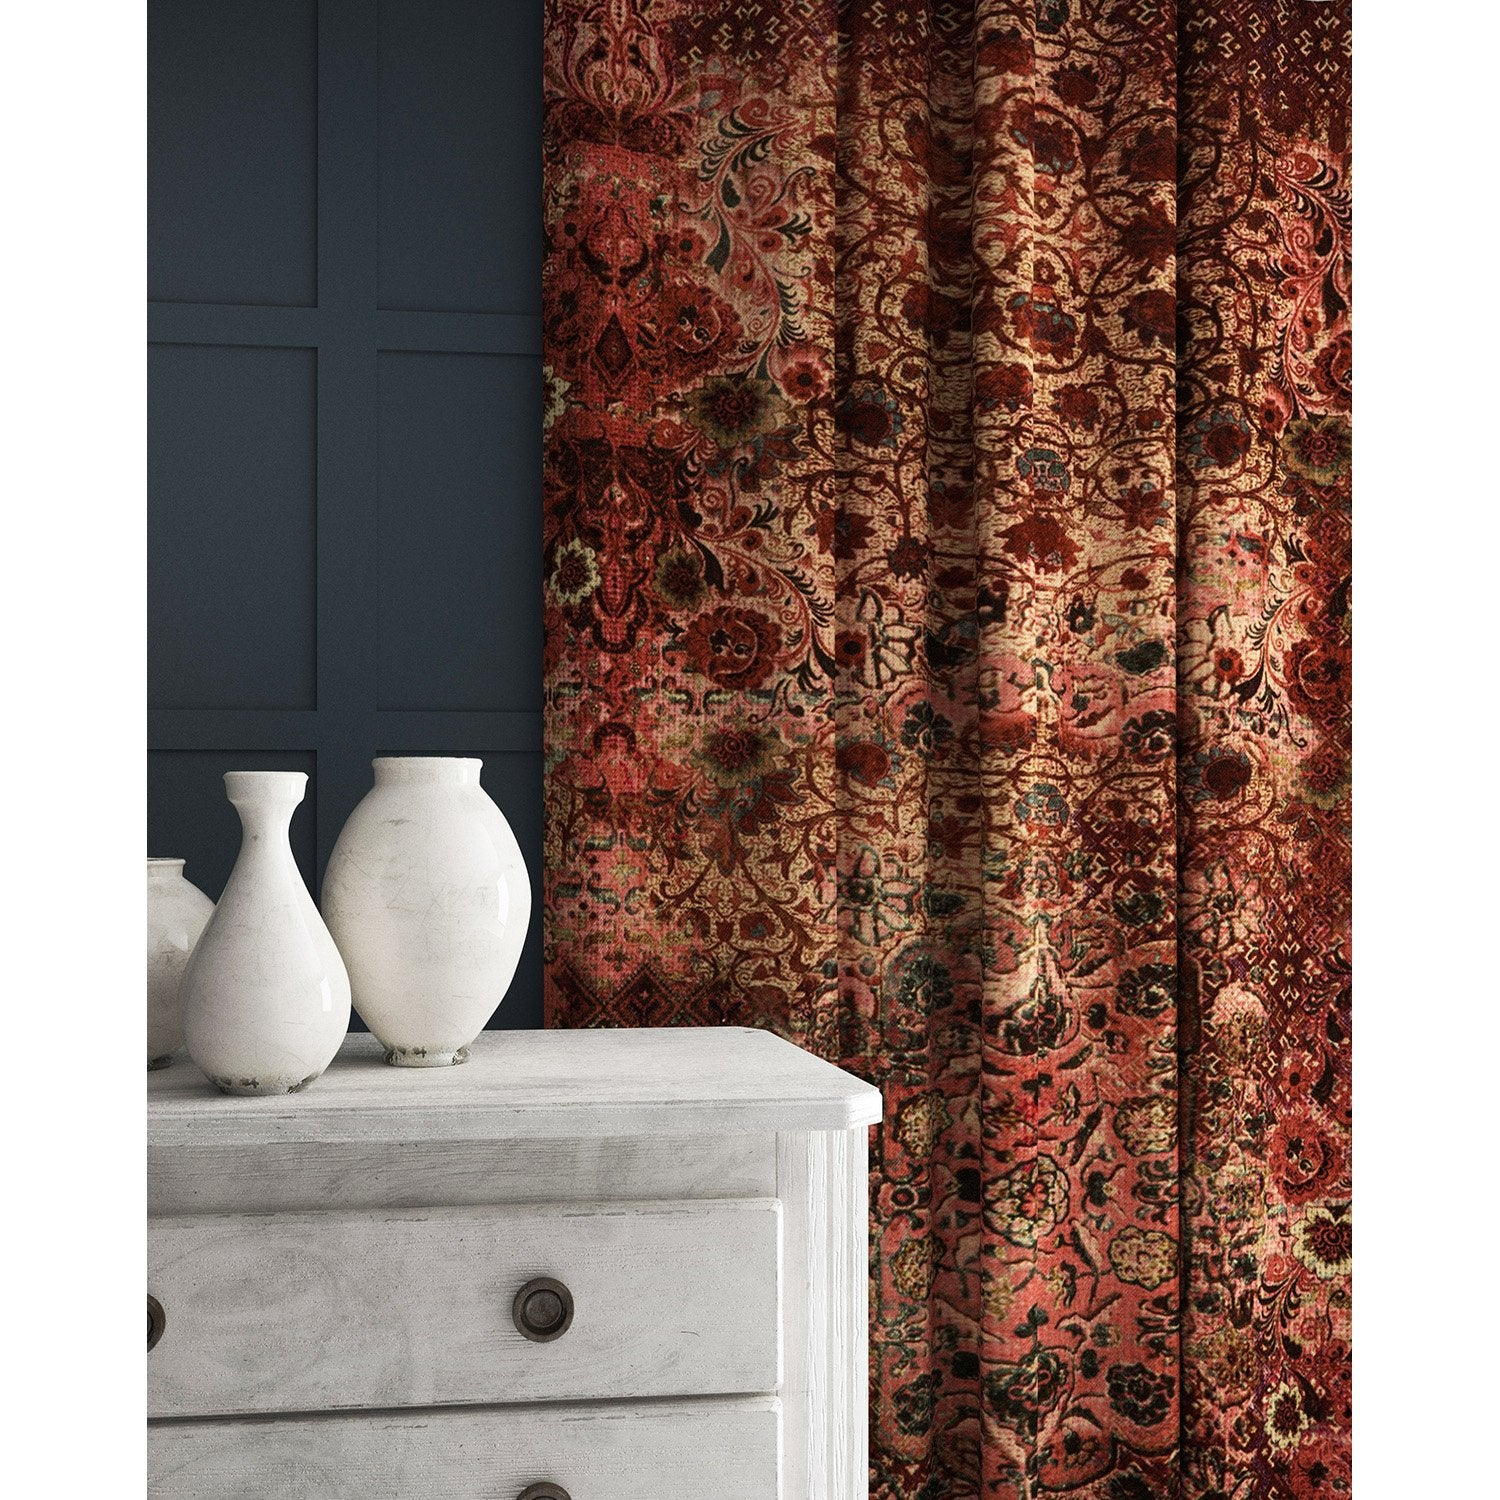 Velvet curtains in a fabric with a carpet design in rich terracotta tones